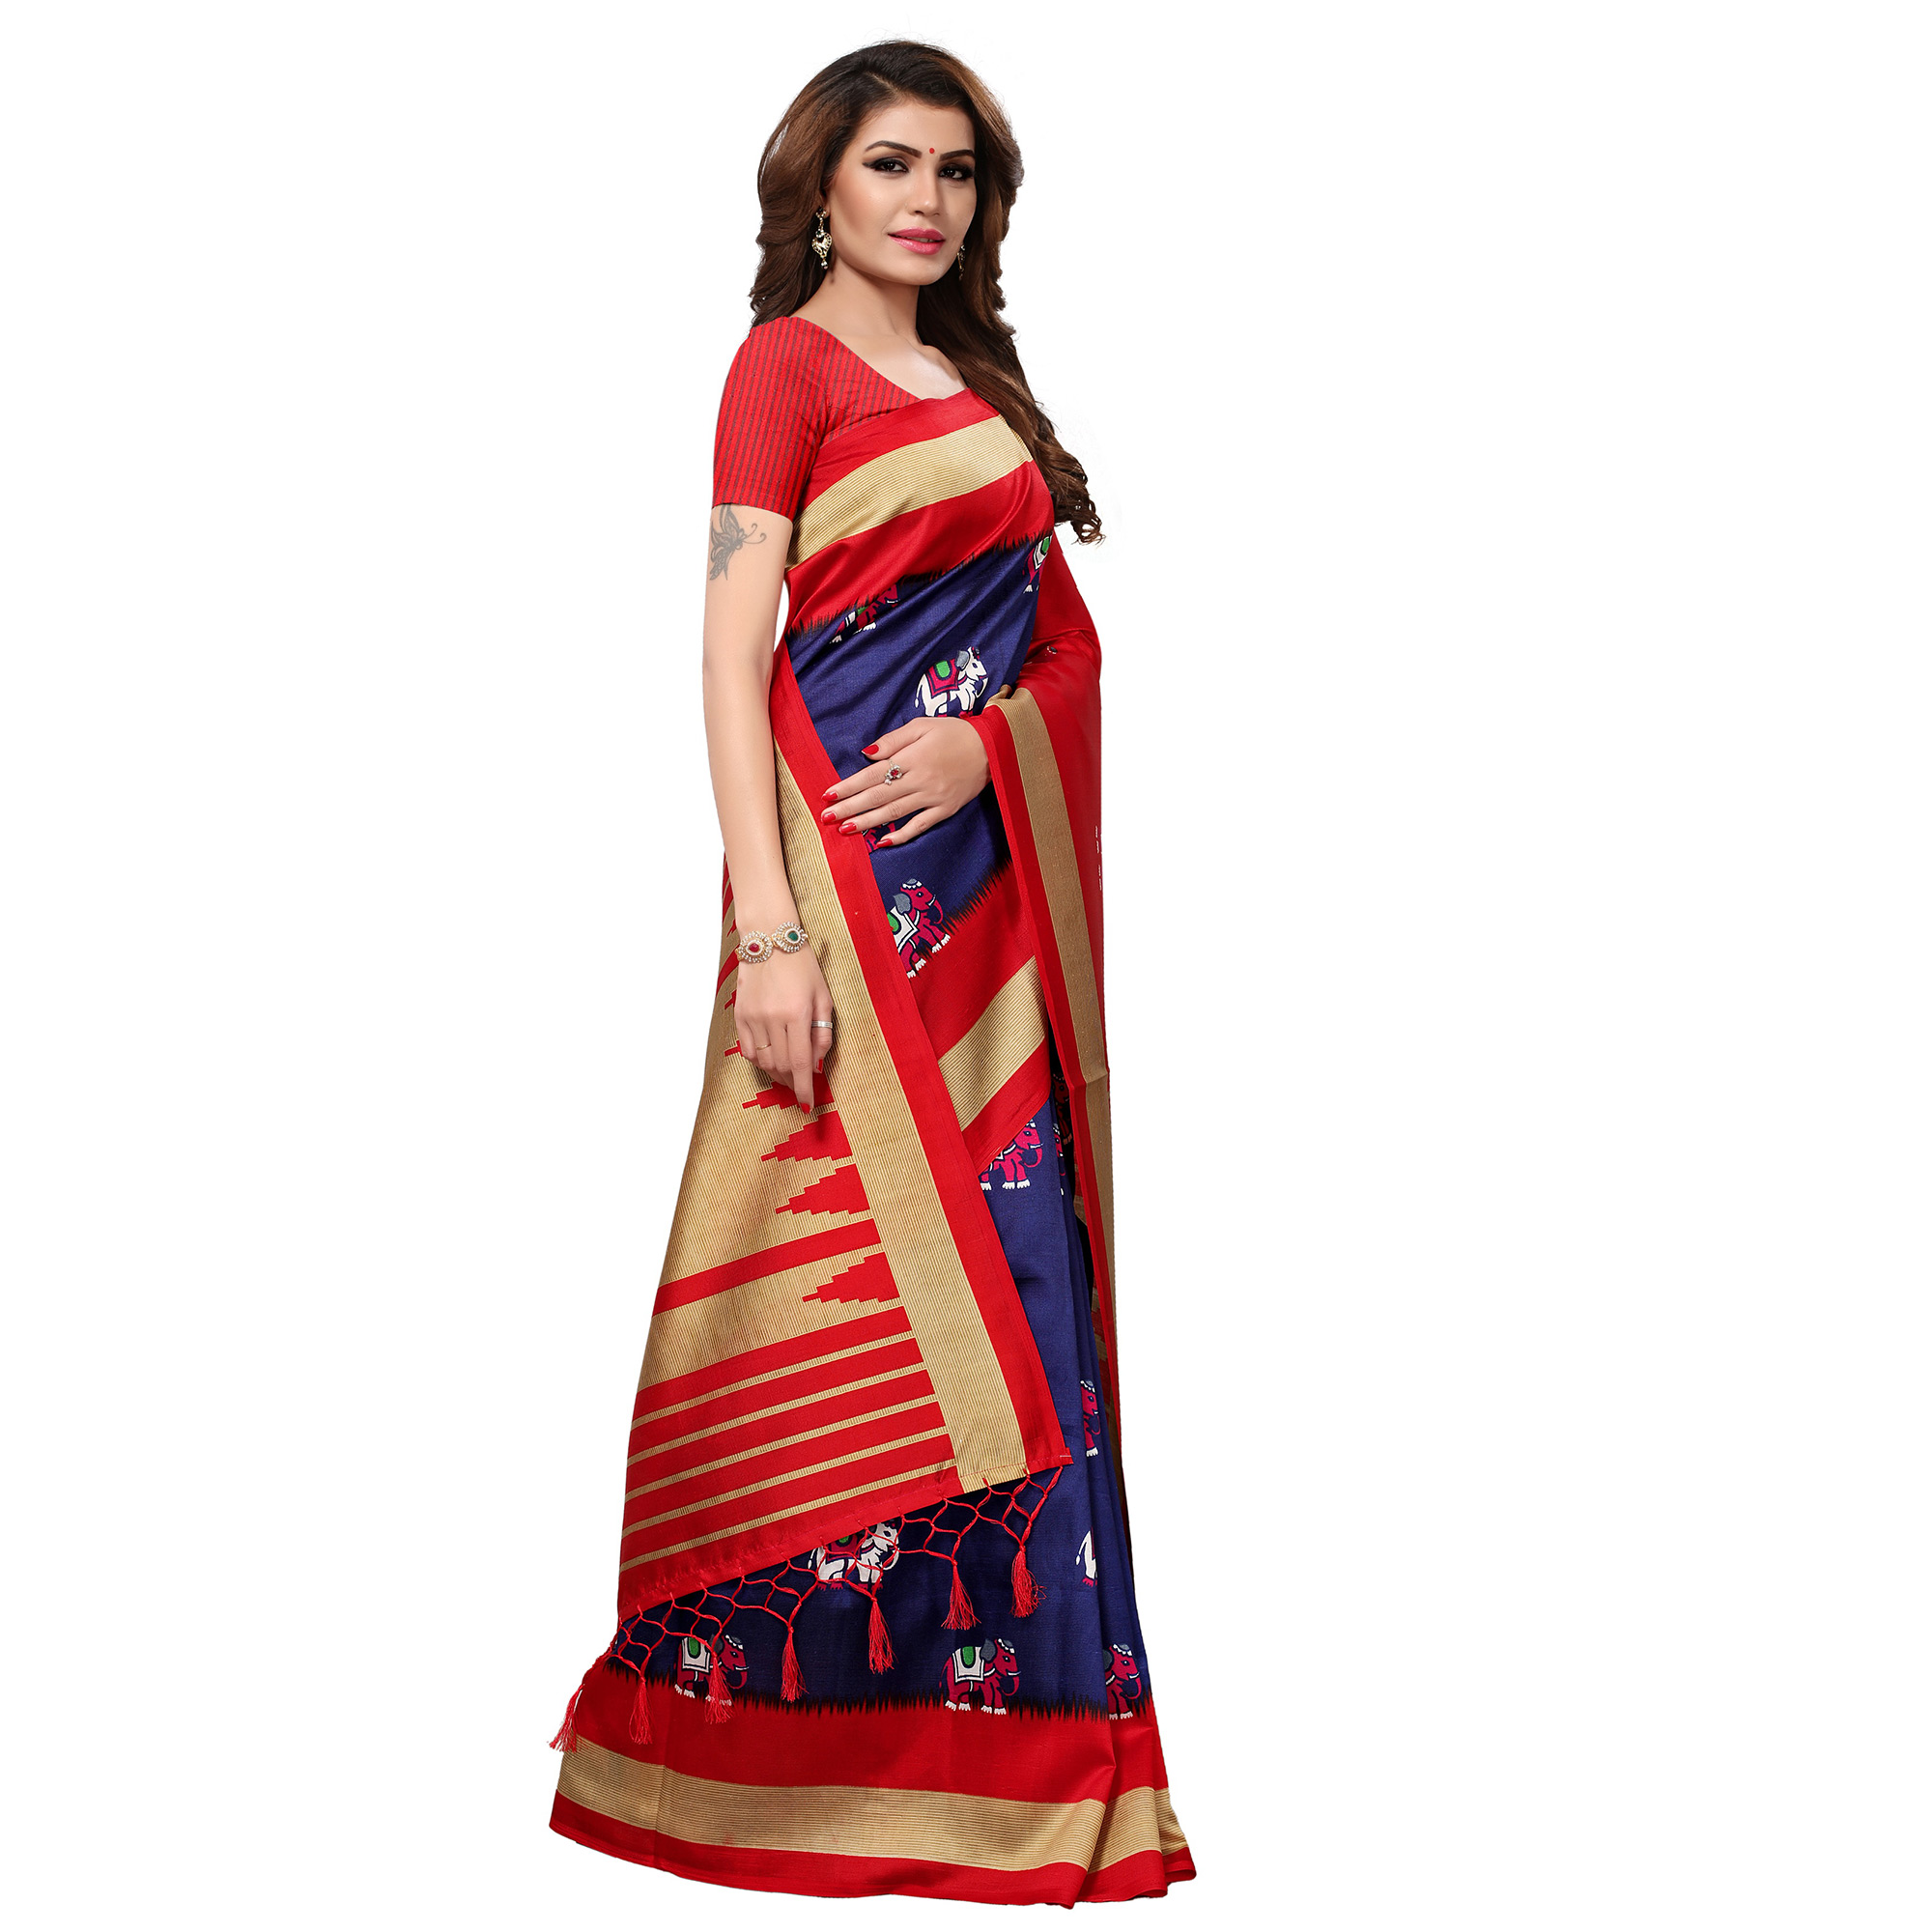 Ravishing Navy Blue-Red Colored Festive Wear Printed Mysore Art Silk Saree